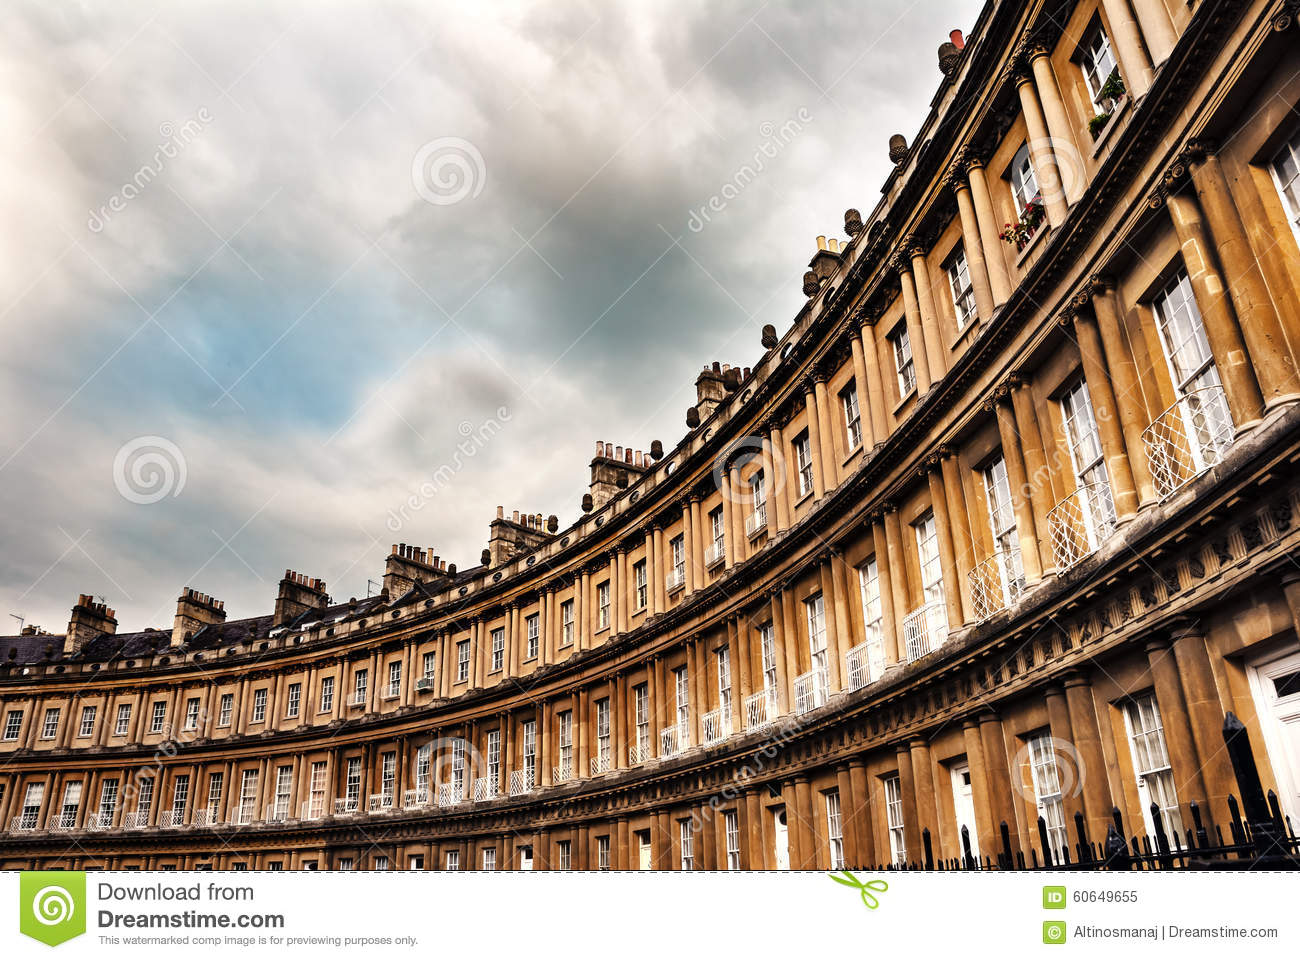 3d Animation Pc Wallpaper The Circus Famous Circular Royal Crescent Building In